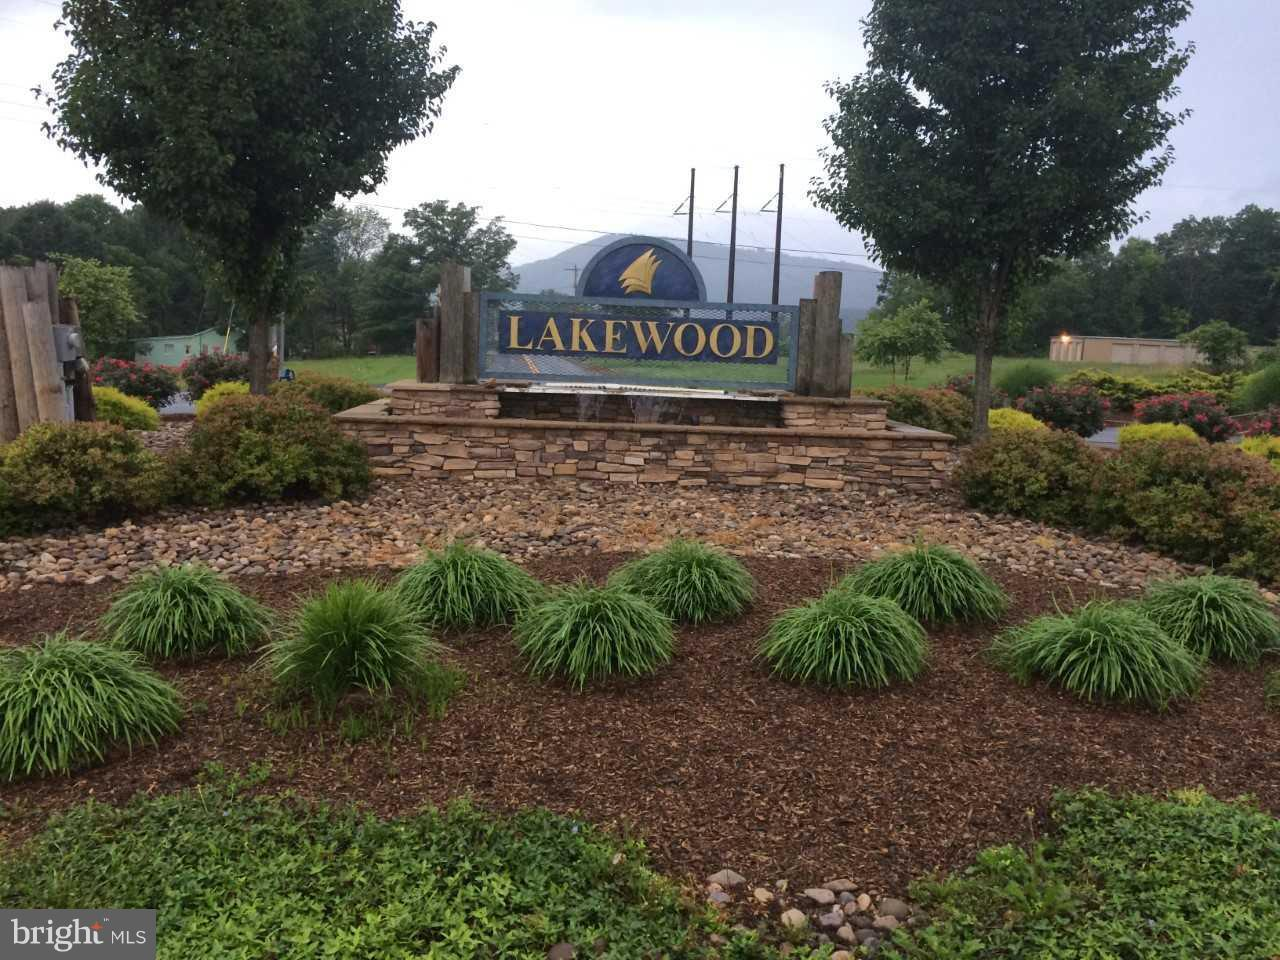 Local Real Estate: Land for Sale — Ridgeley, WV — Coldwell Banker